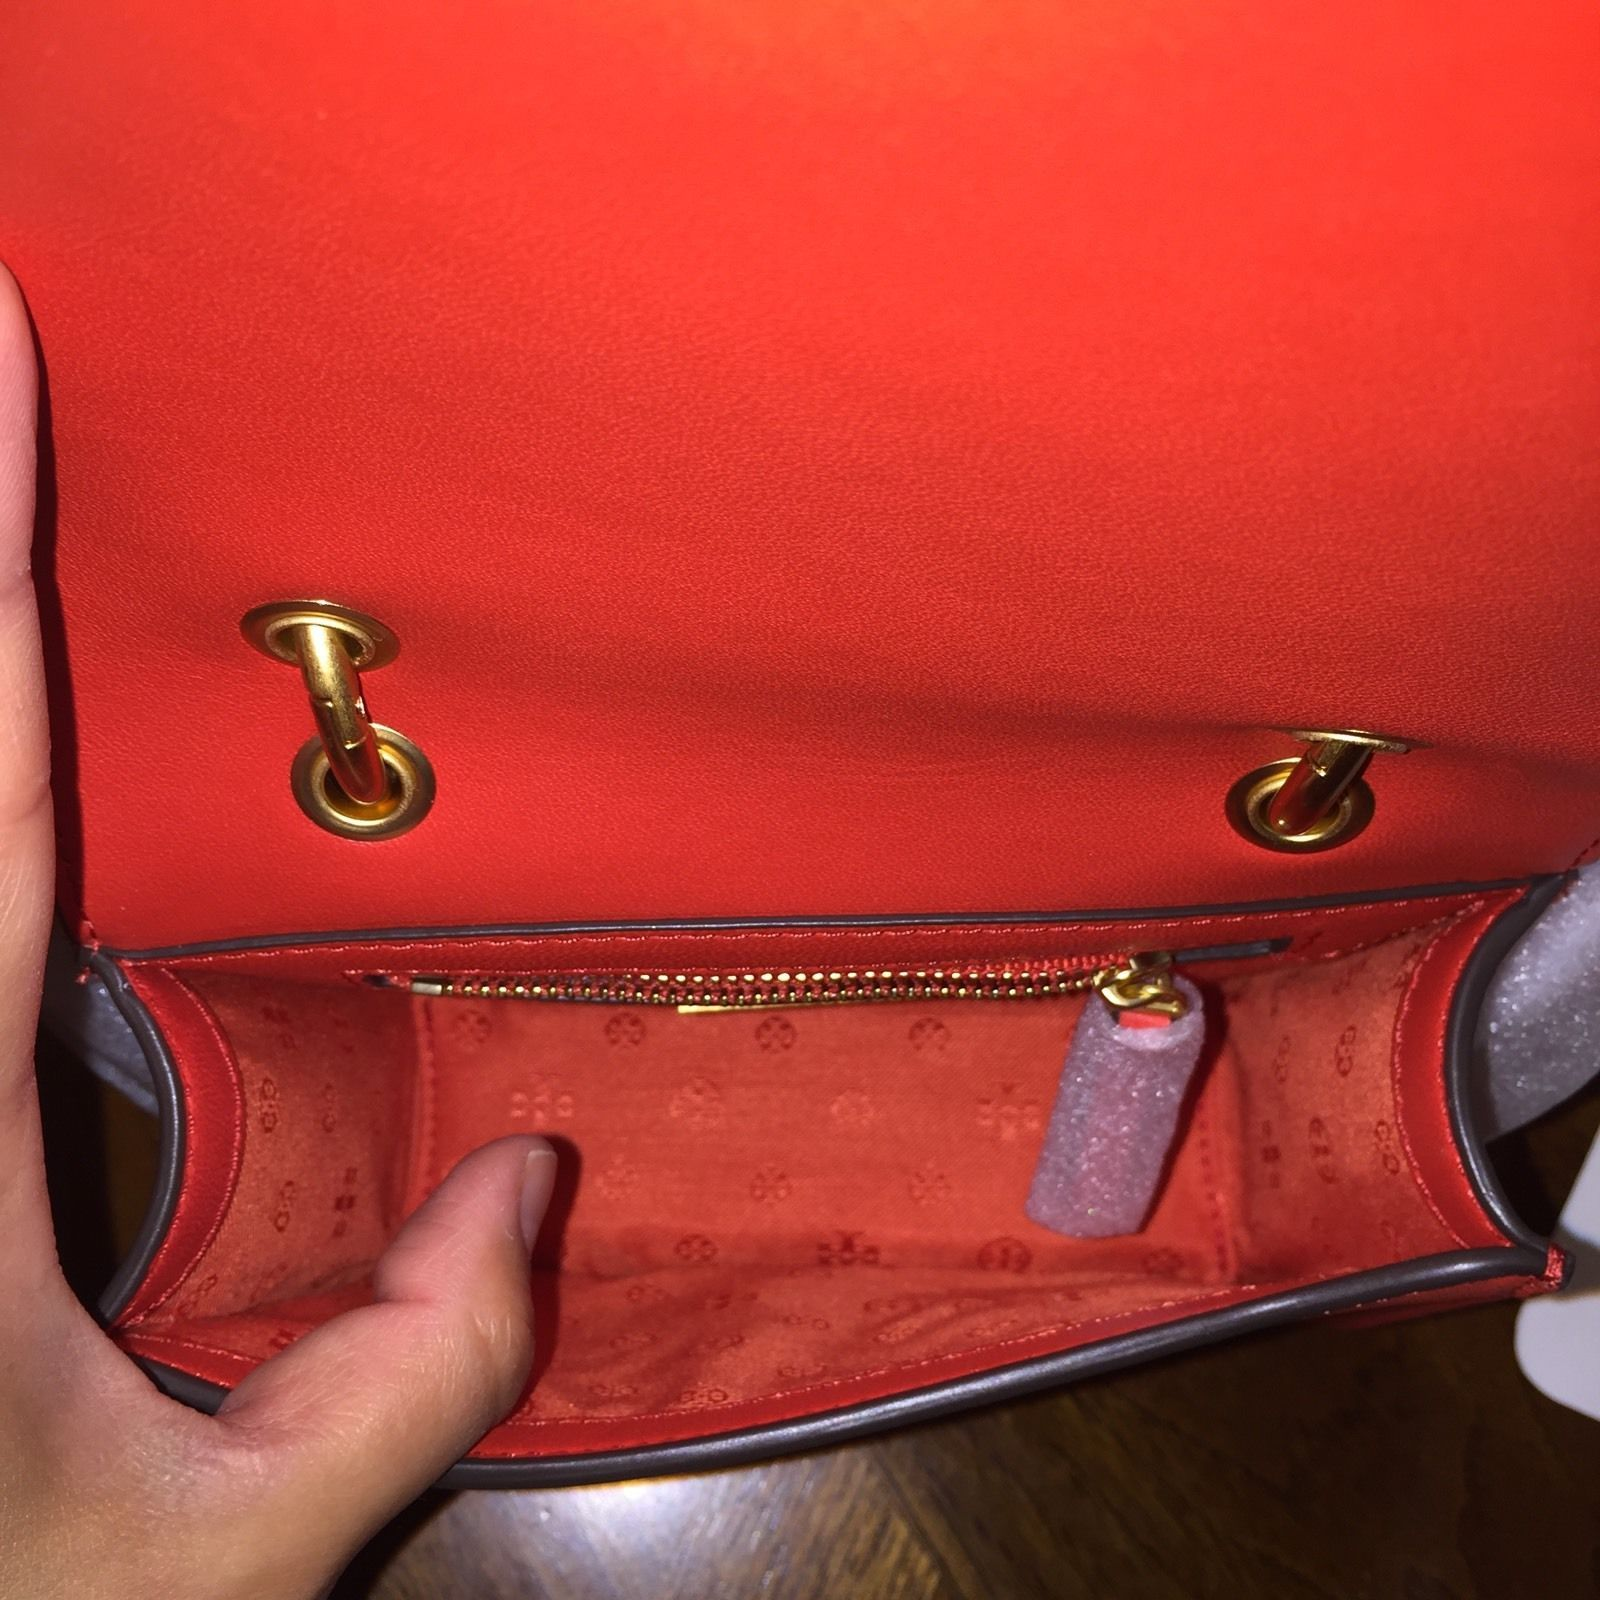 NWT TORY BURCH ALEXA SUEDE CONVERTIBLE MINI SHOULDER BAG IN SAMBA